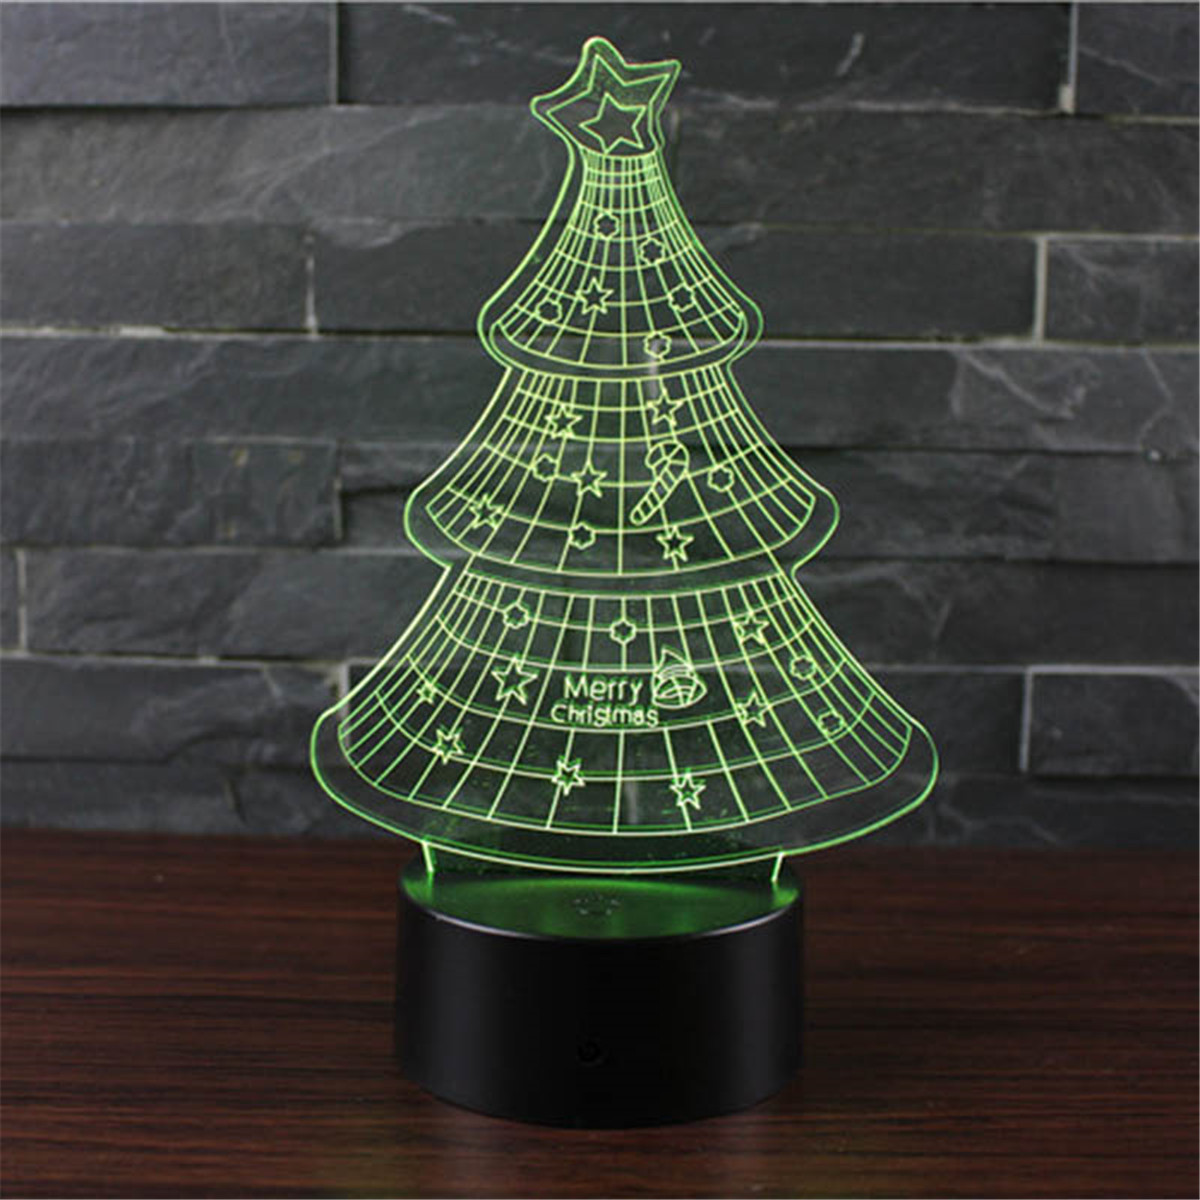 Creative 3D Christmas Tree Illusion LED Night Light 7 Colors ...